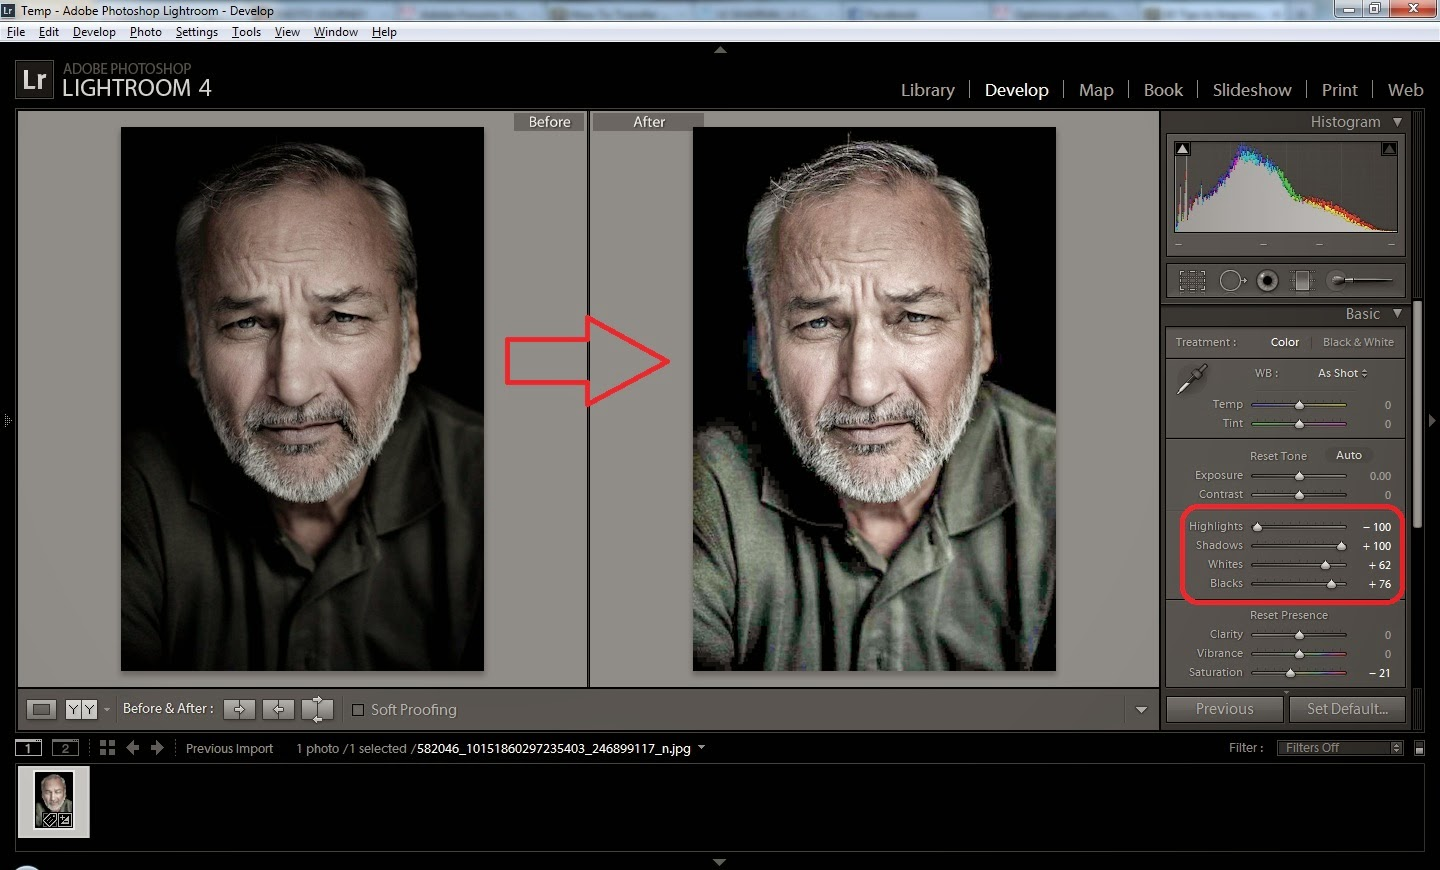 how to get adobe photoshop